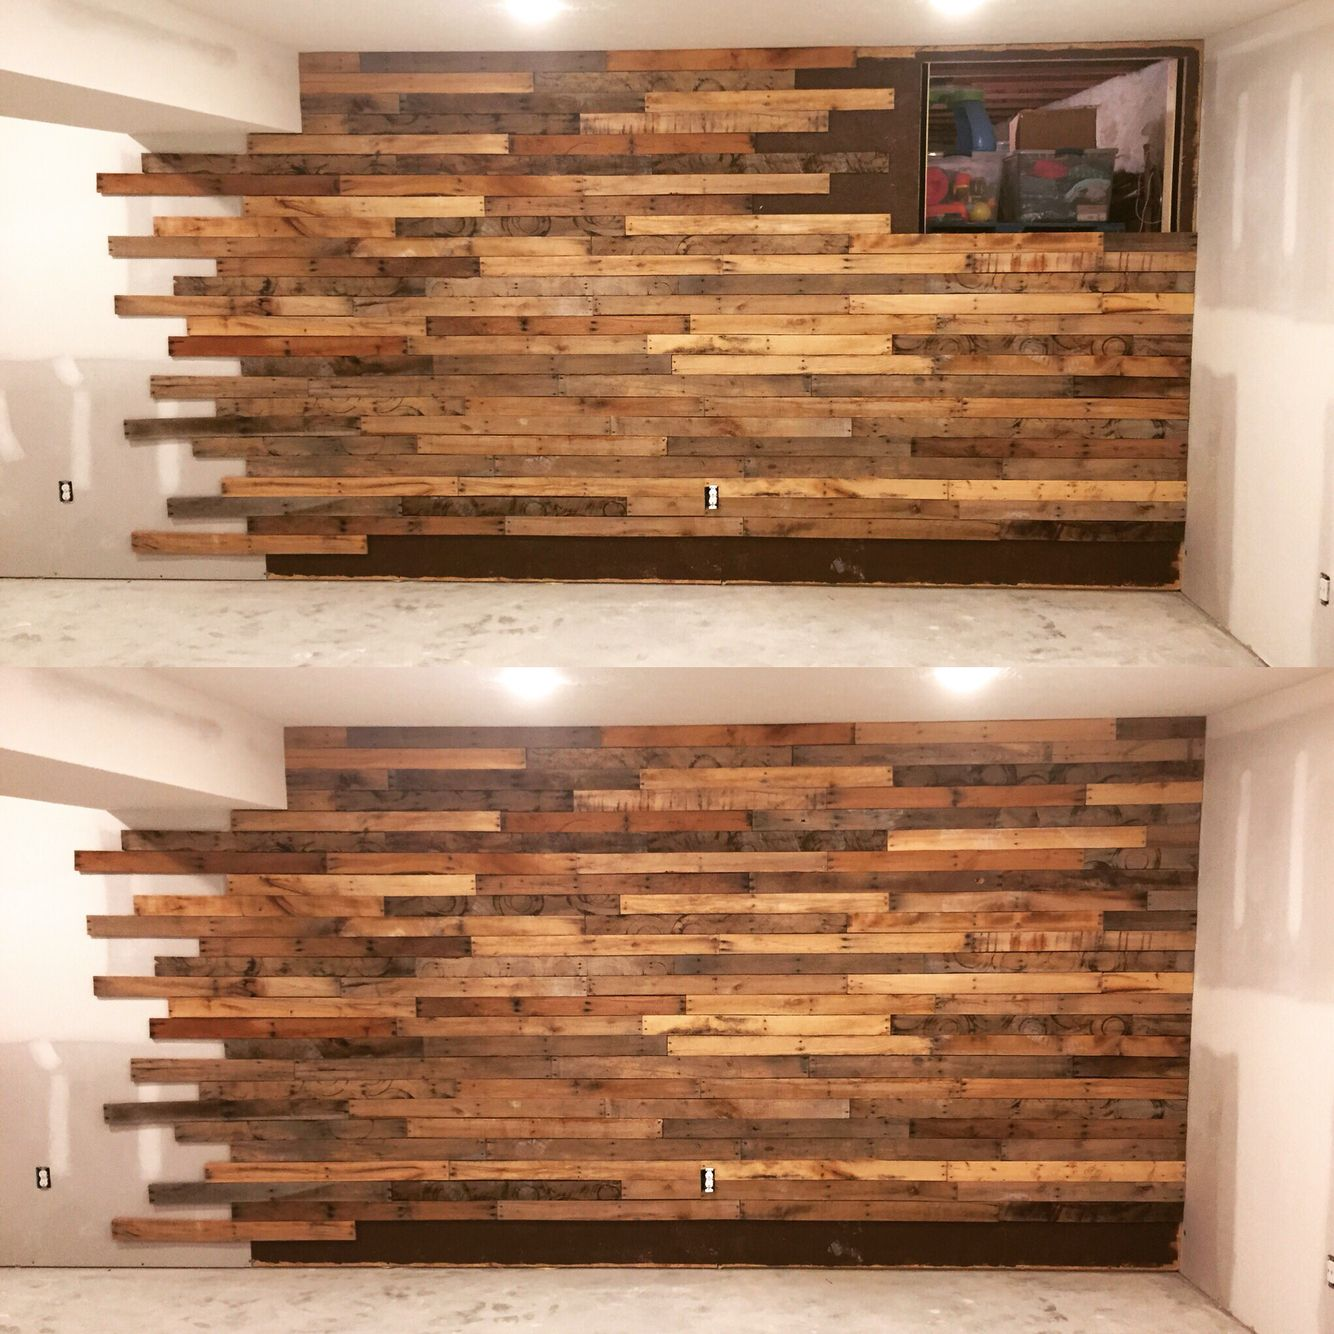 Lighting Basement Washroom Stairs: Pallet Wall With Hidden Access Into The Basement Crawl